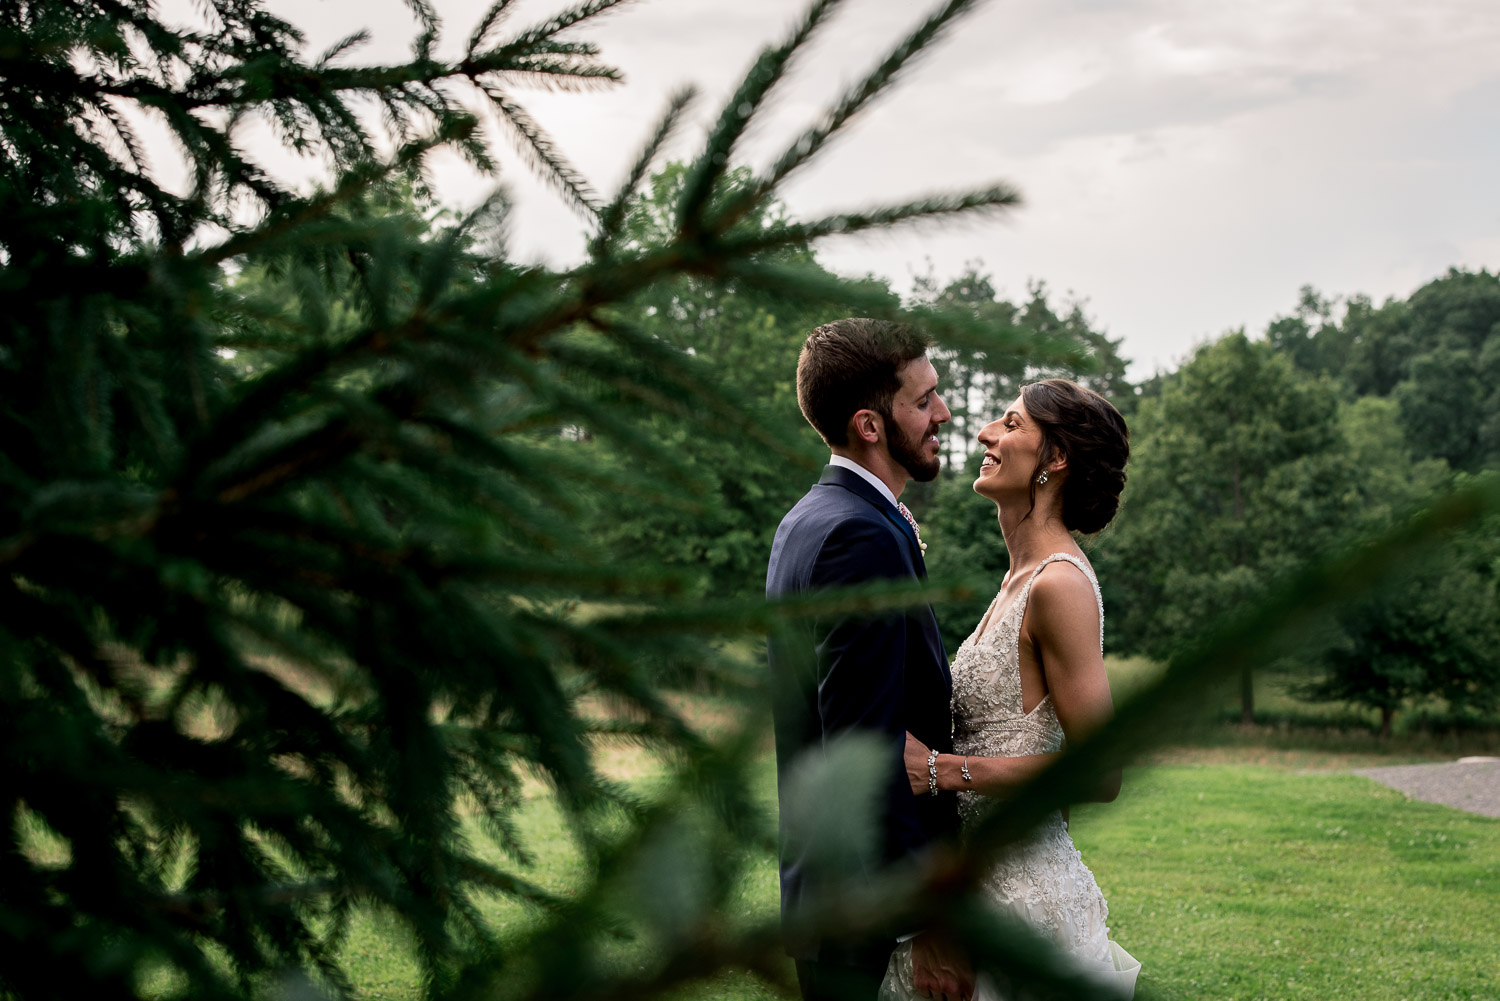 bride and groom by pine trees